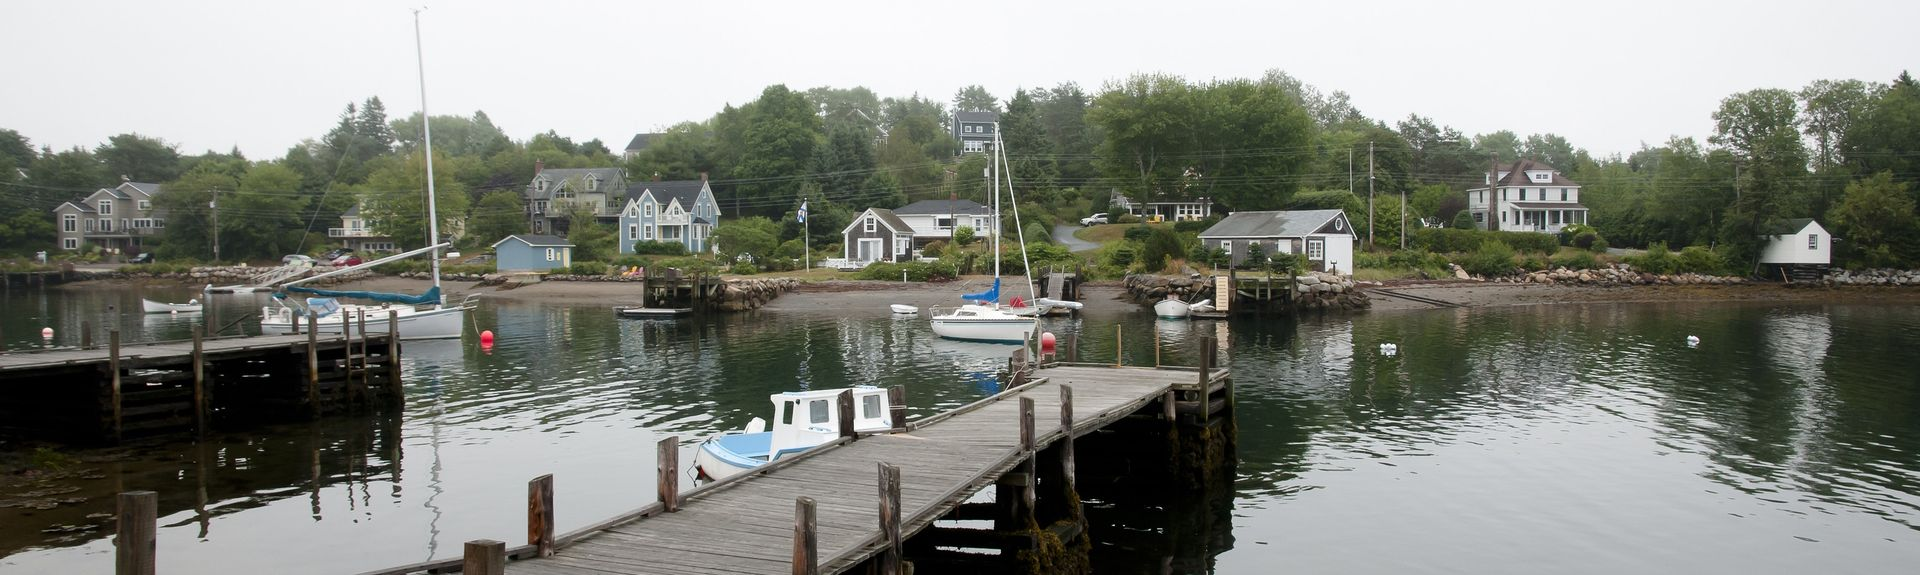 Chester, Chester, NS, Canada